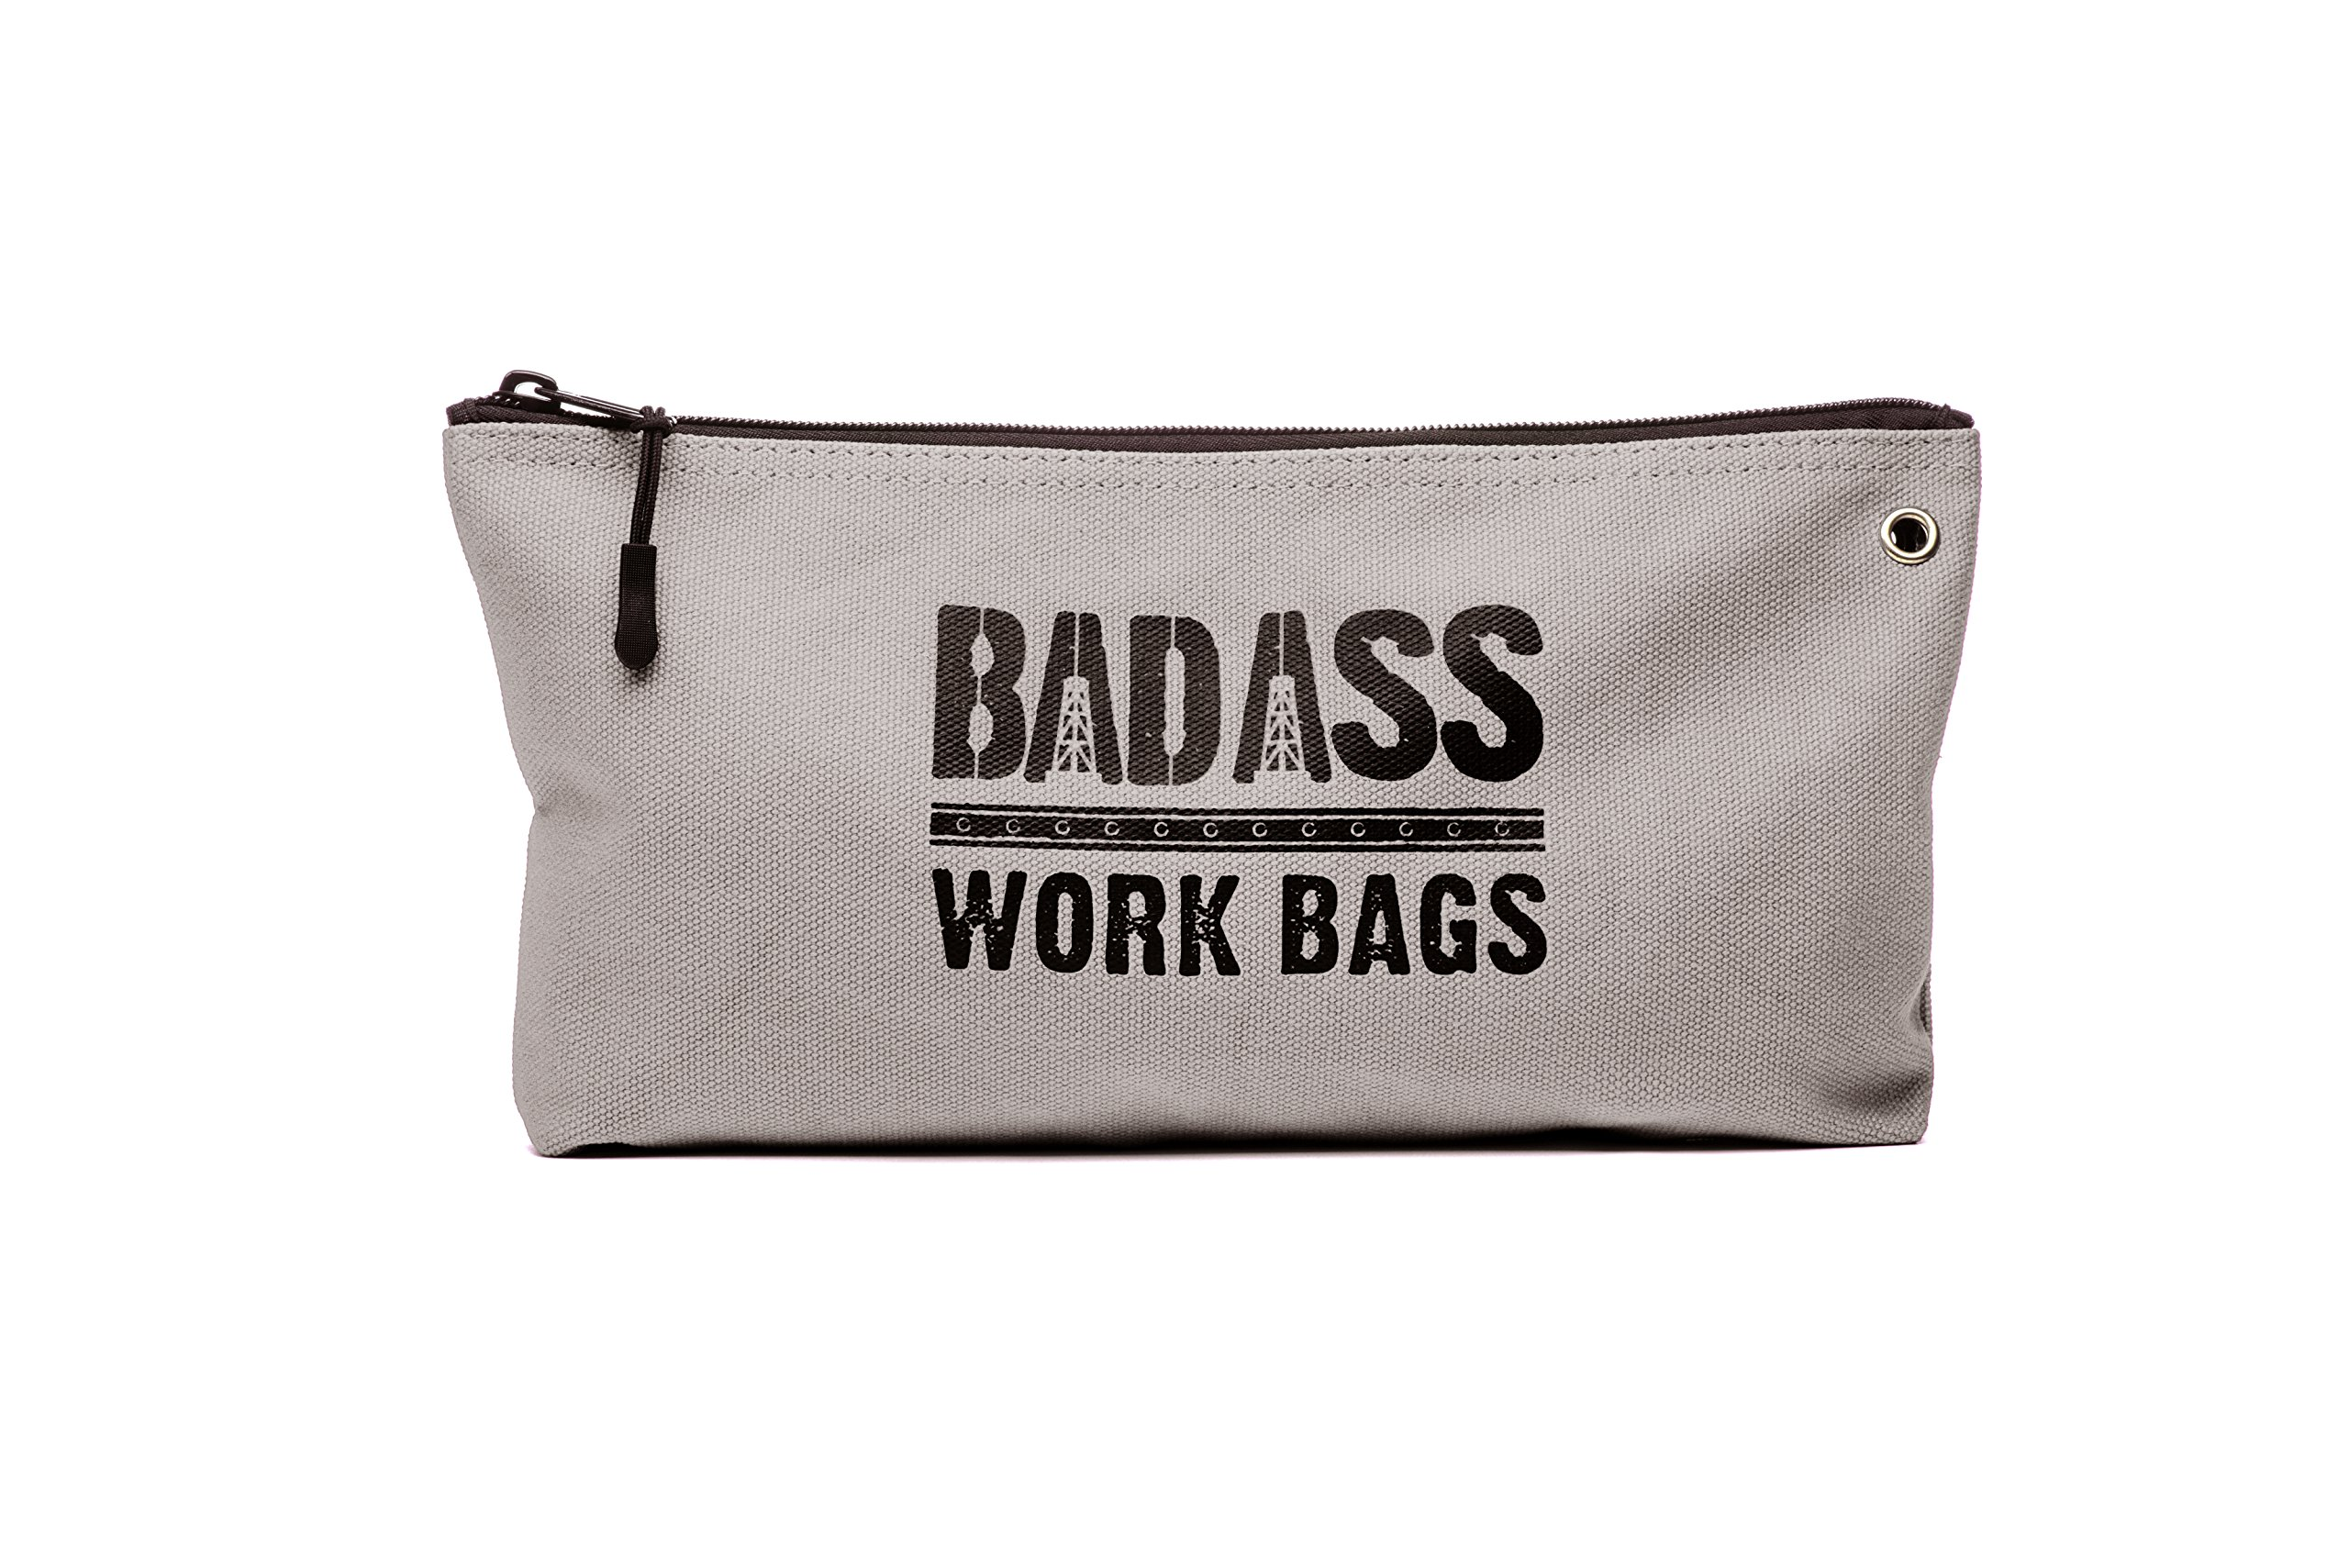 Bad Ass Work Gear   4-Pack of Heavy Duty 20 oz. Canvas Zipper Tool Bags in 4 colors   Toughest Utility Bag by Bad Ass Work Gear (Image #4)